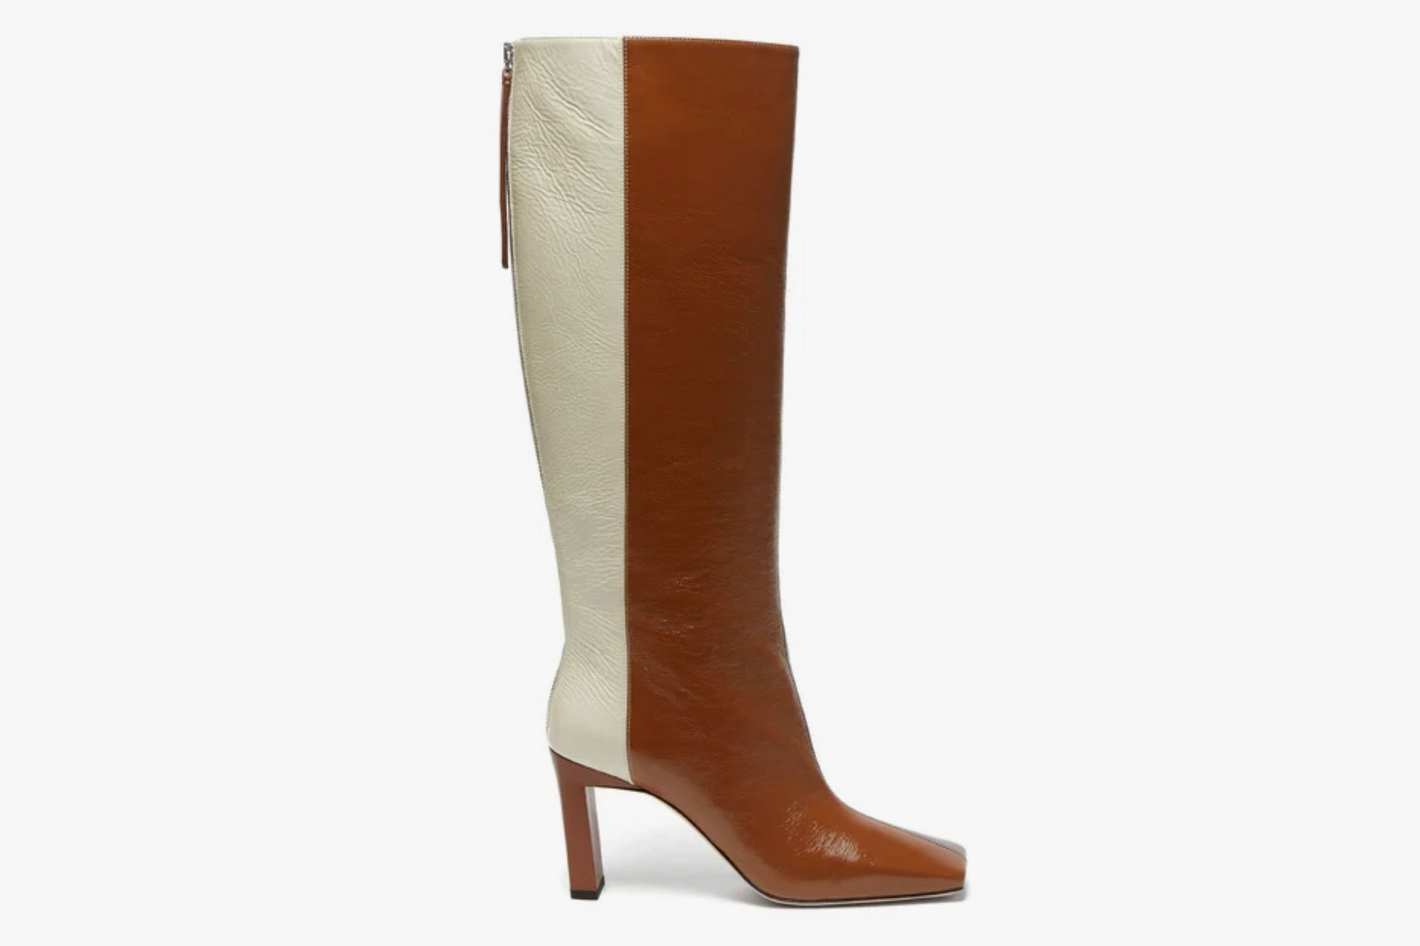 Wandler Isa tri-colour square-toe leather boots